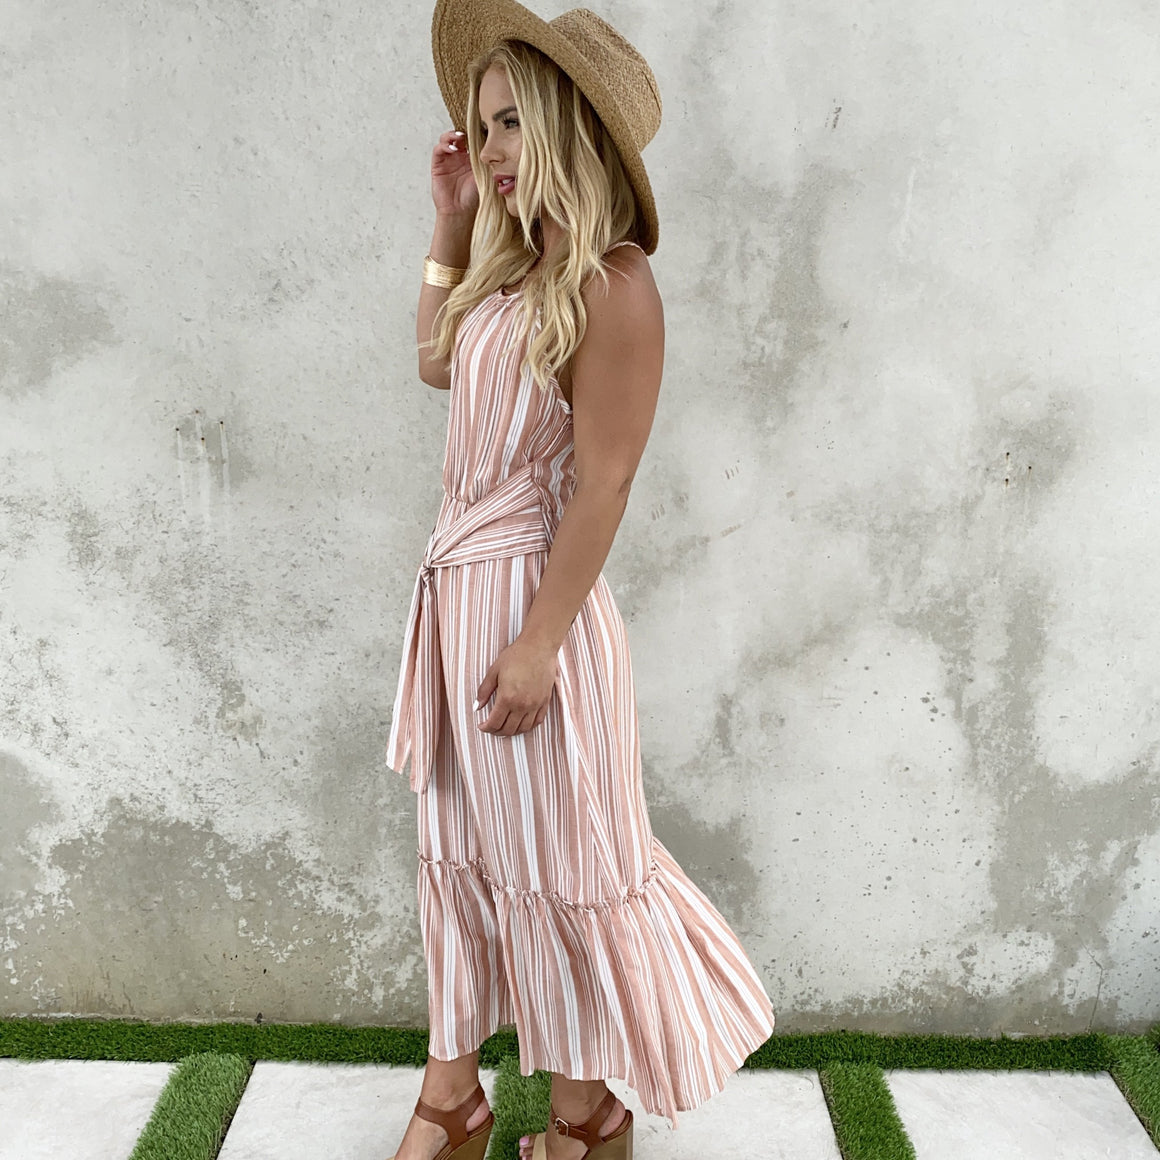 On Deck Stripe Pink Maxi Dress - Dainty Hooligan